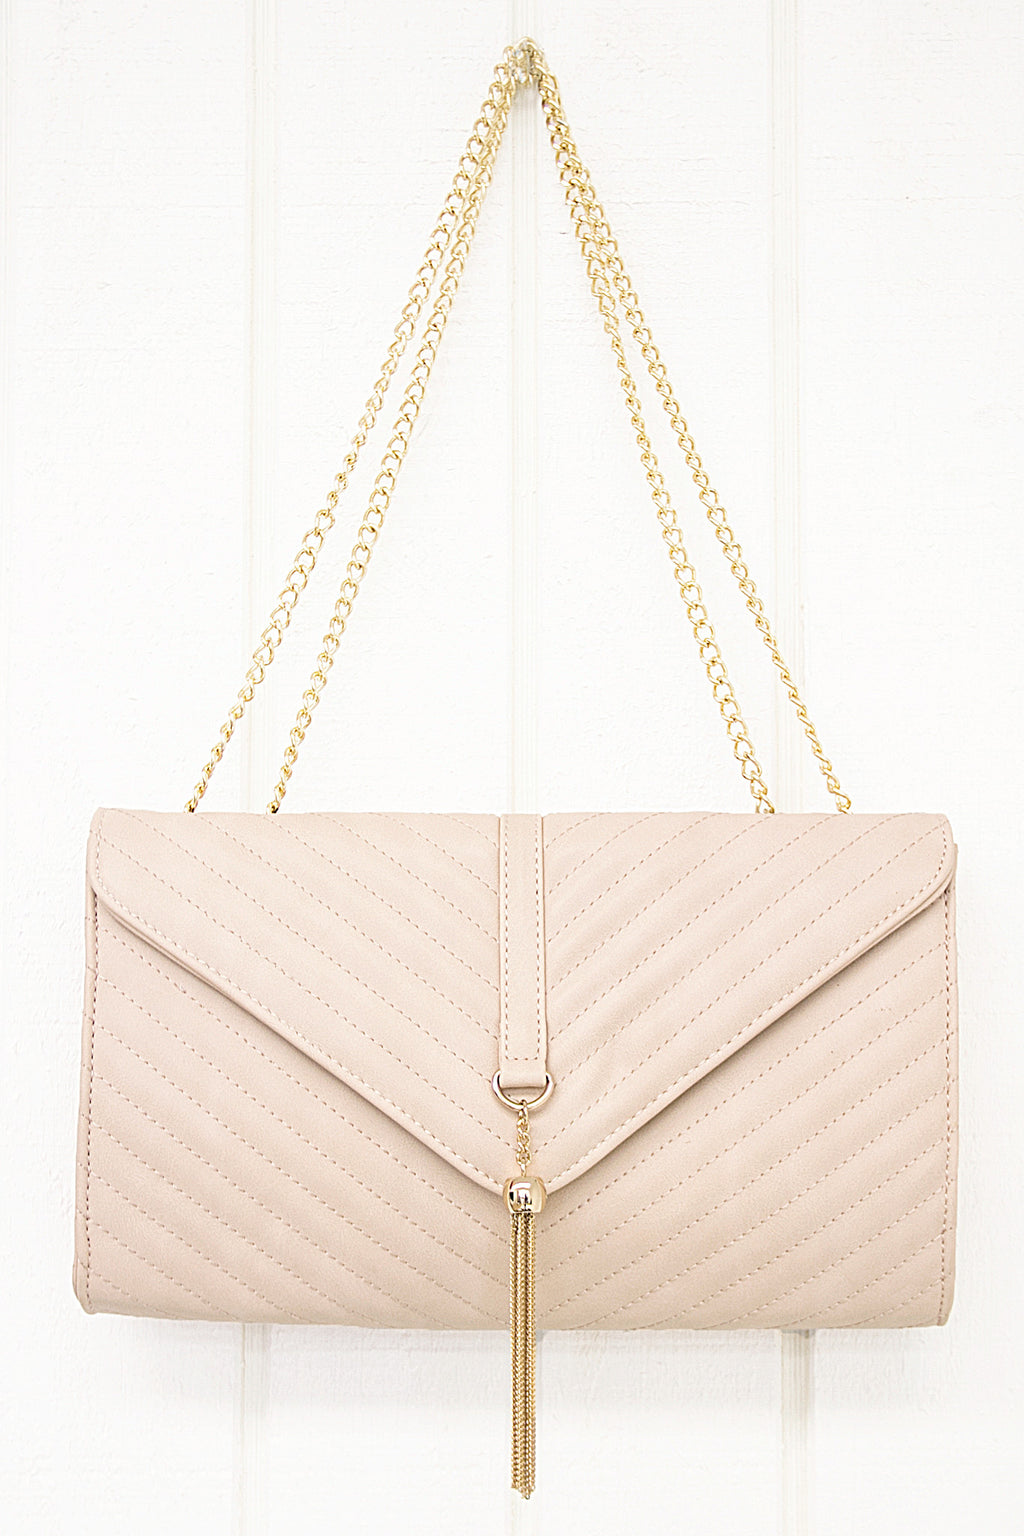 Stanford Chain Crossbody - Rose - Haute & Rebellious